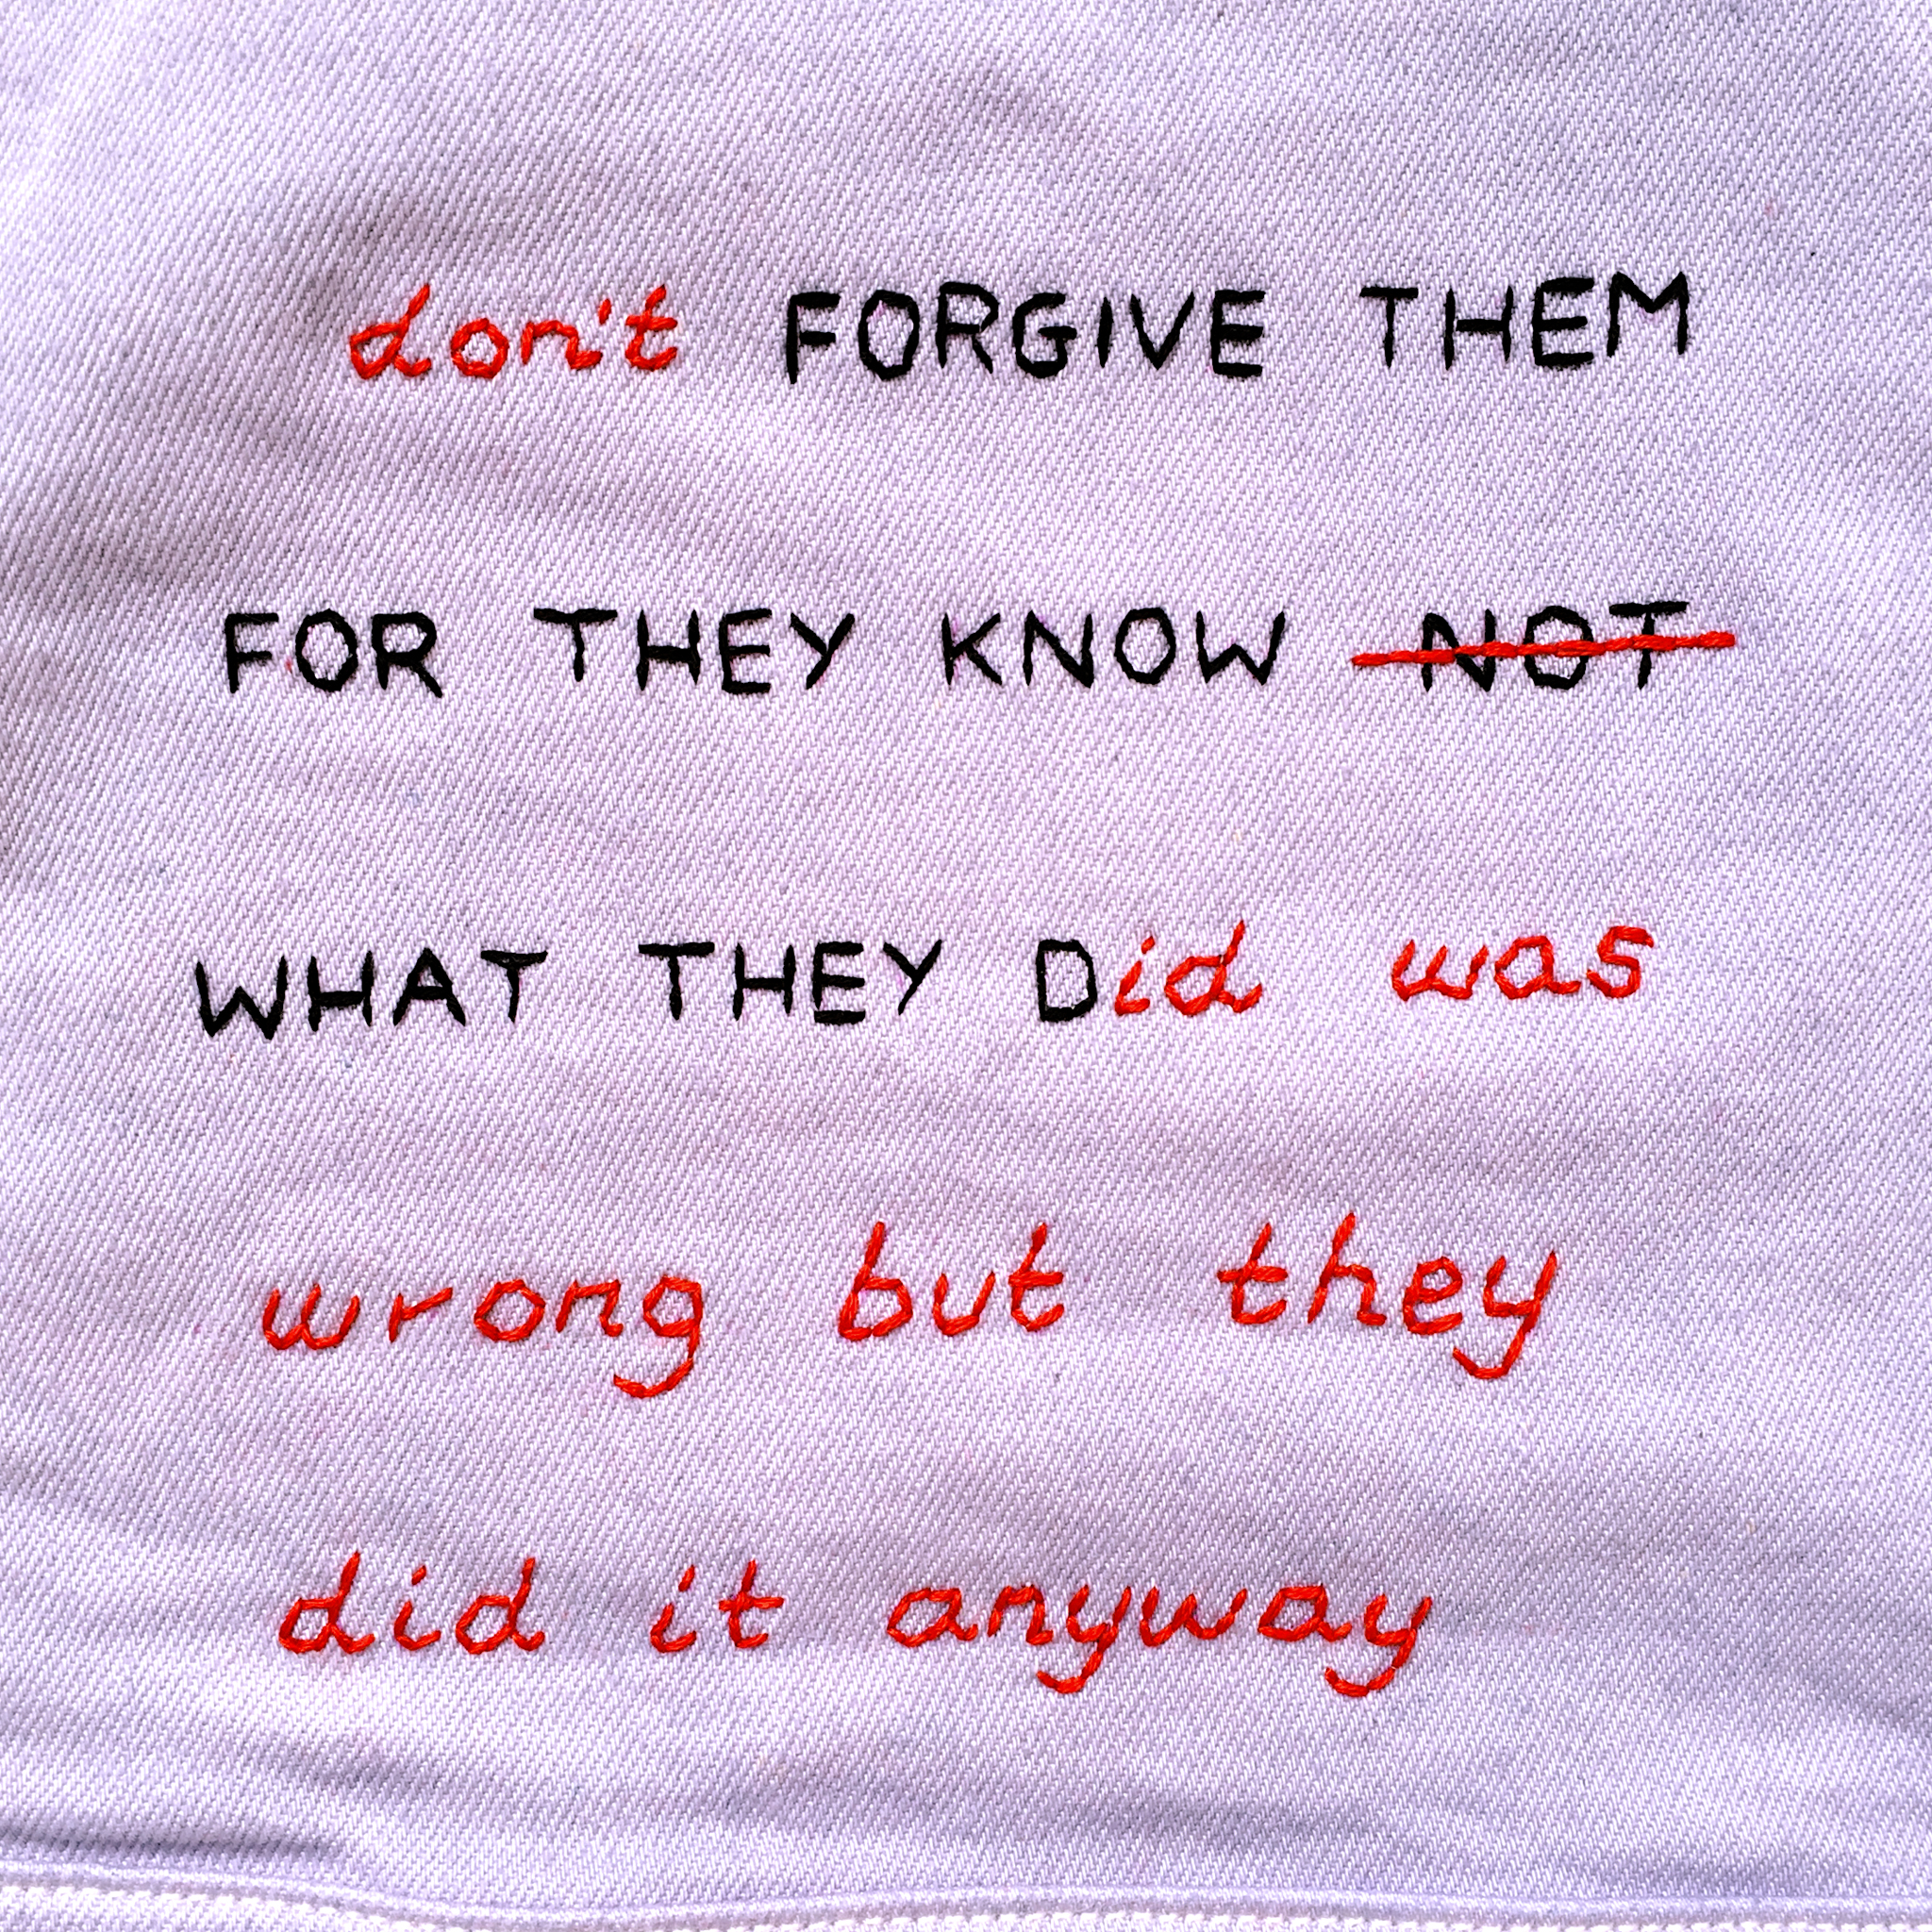 """embroidered """"don't forgive them, for they know what they did was wrong but they did it anyway"""", 2018, Sophie King"""